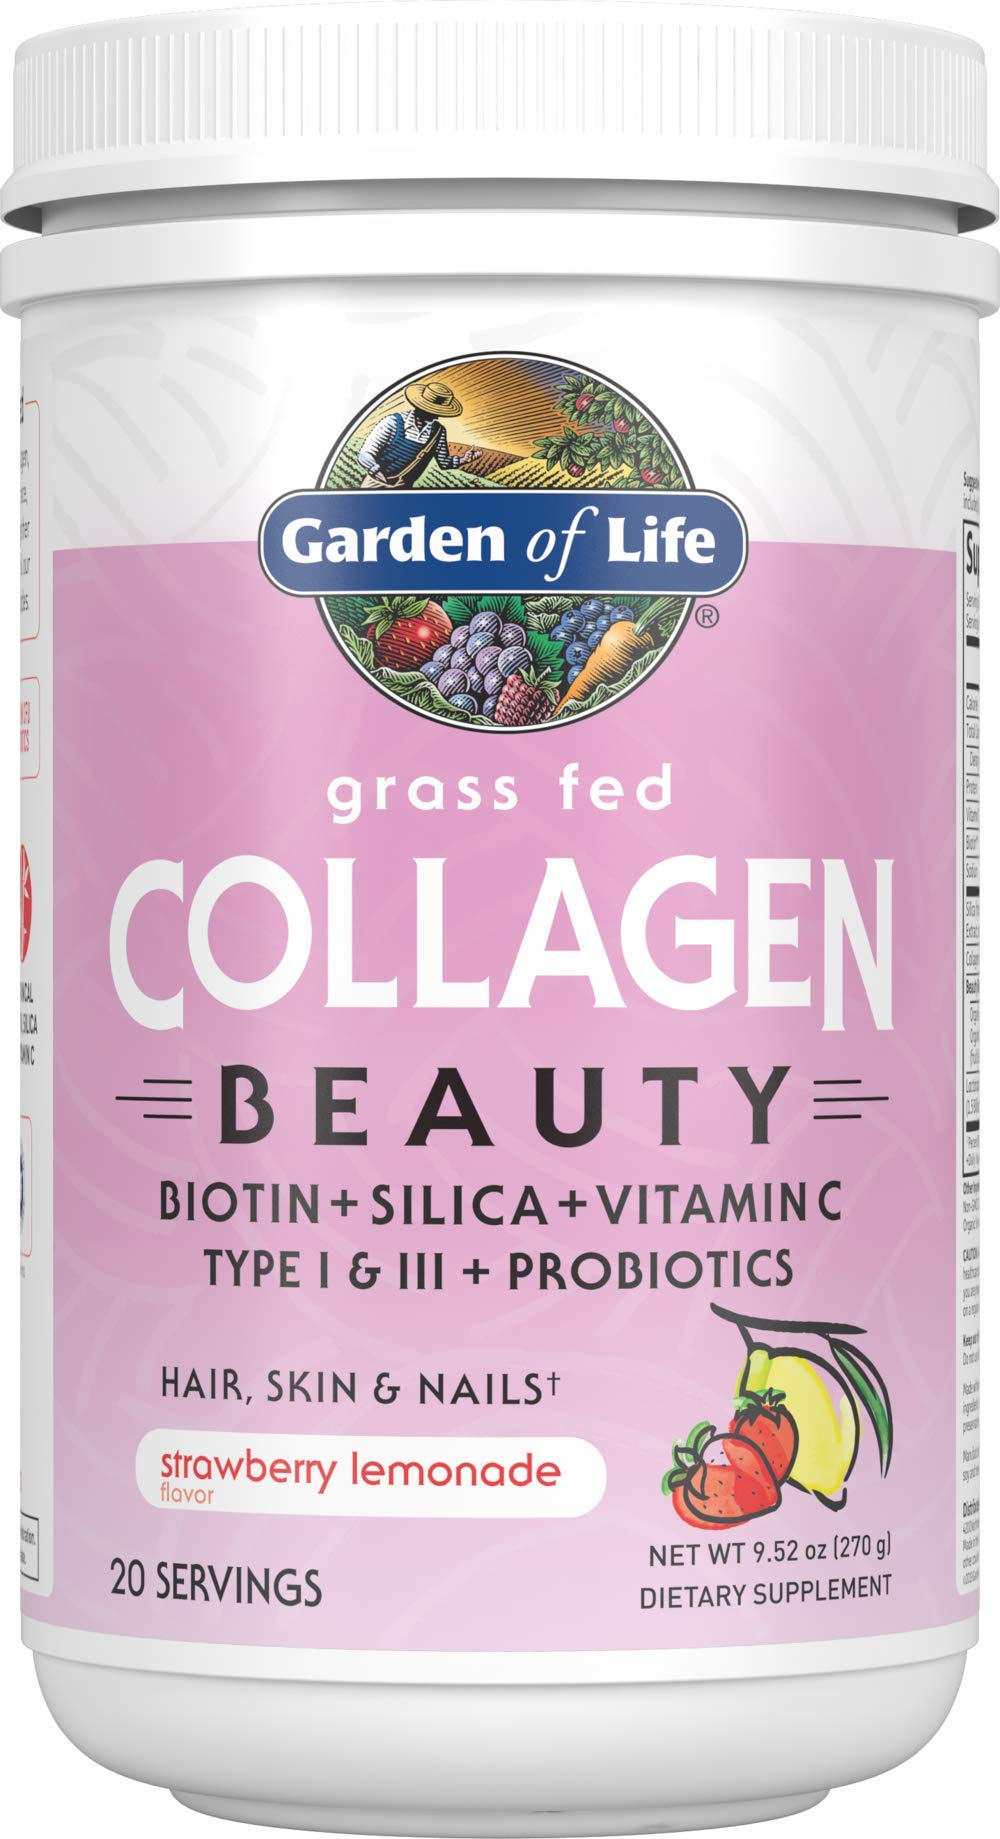 Garden of Life Grass Fed Collagen Beauty, Strawberry Lemonade, 20 Servings, Collagen Powder for Women Men Hair Skin Nails, Hydrolyzed Collagen Peptides Powder Protein Supplements *Packaging May Vary*